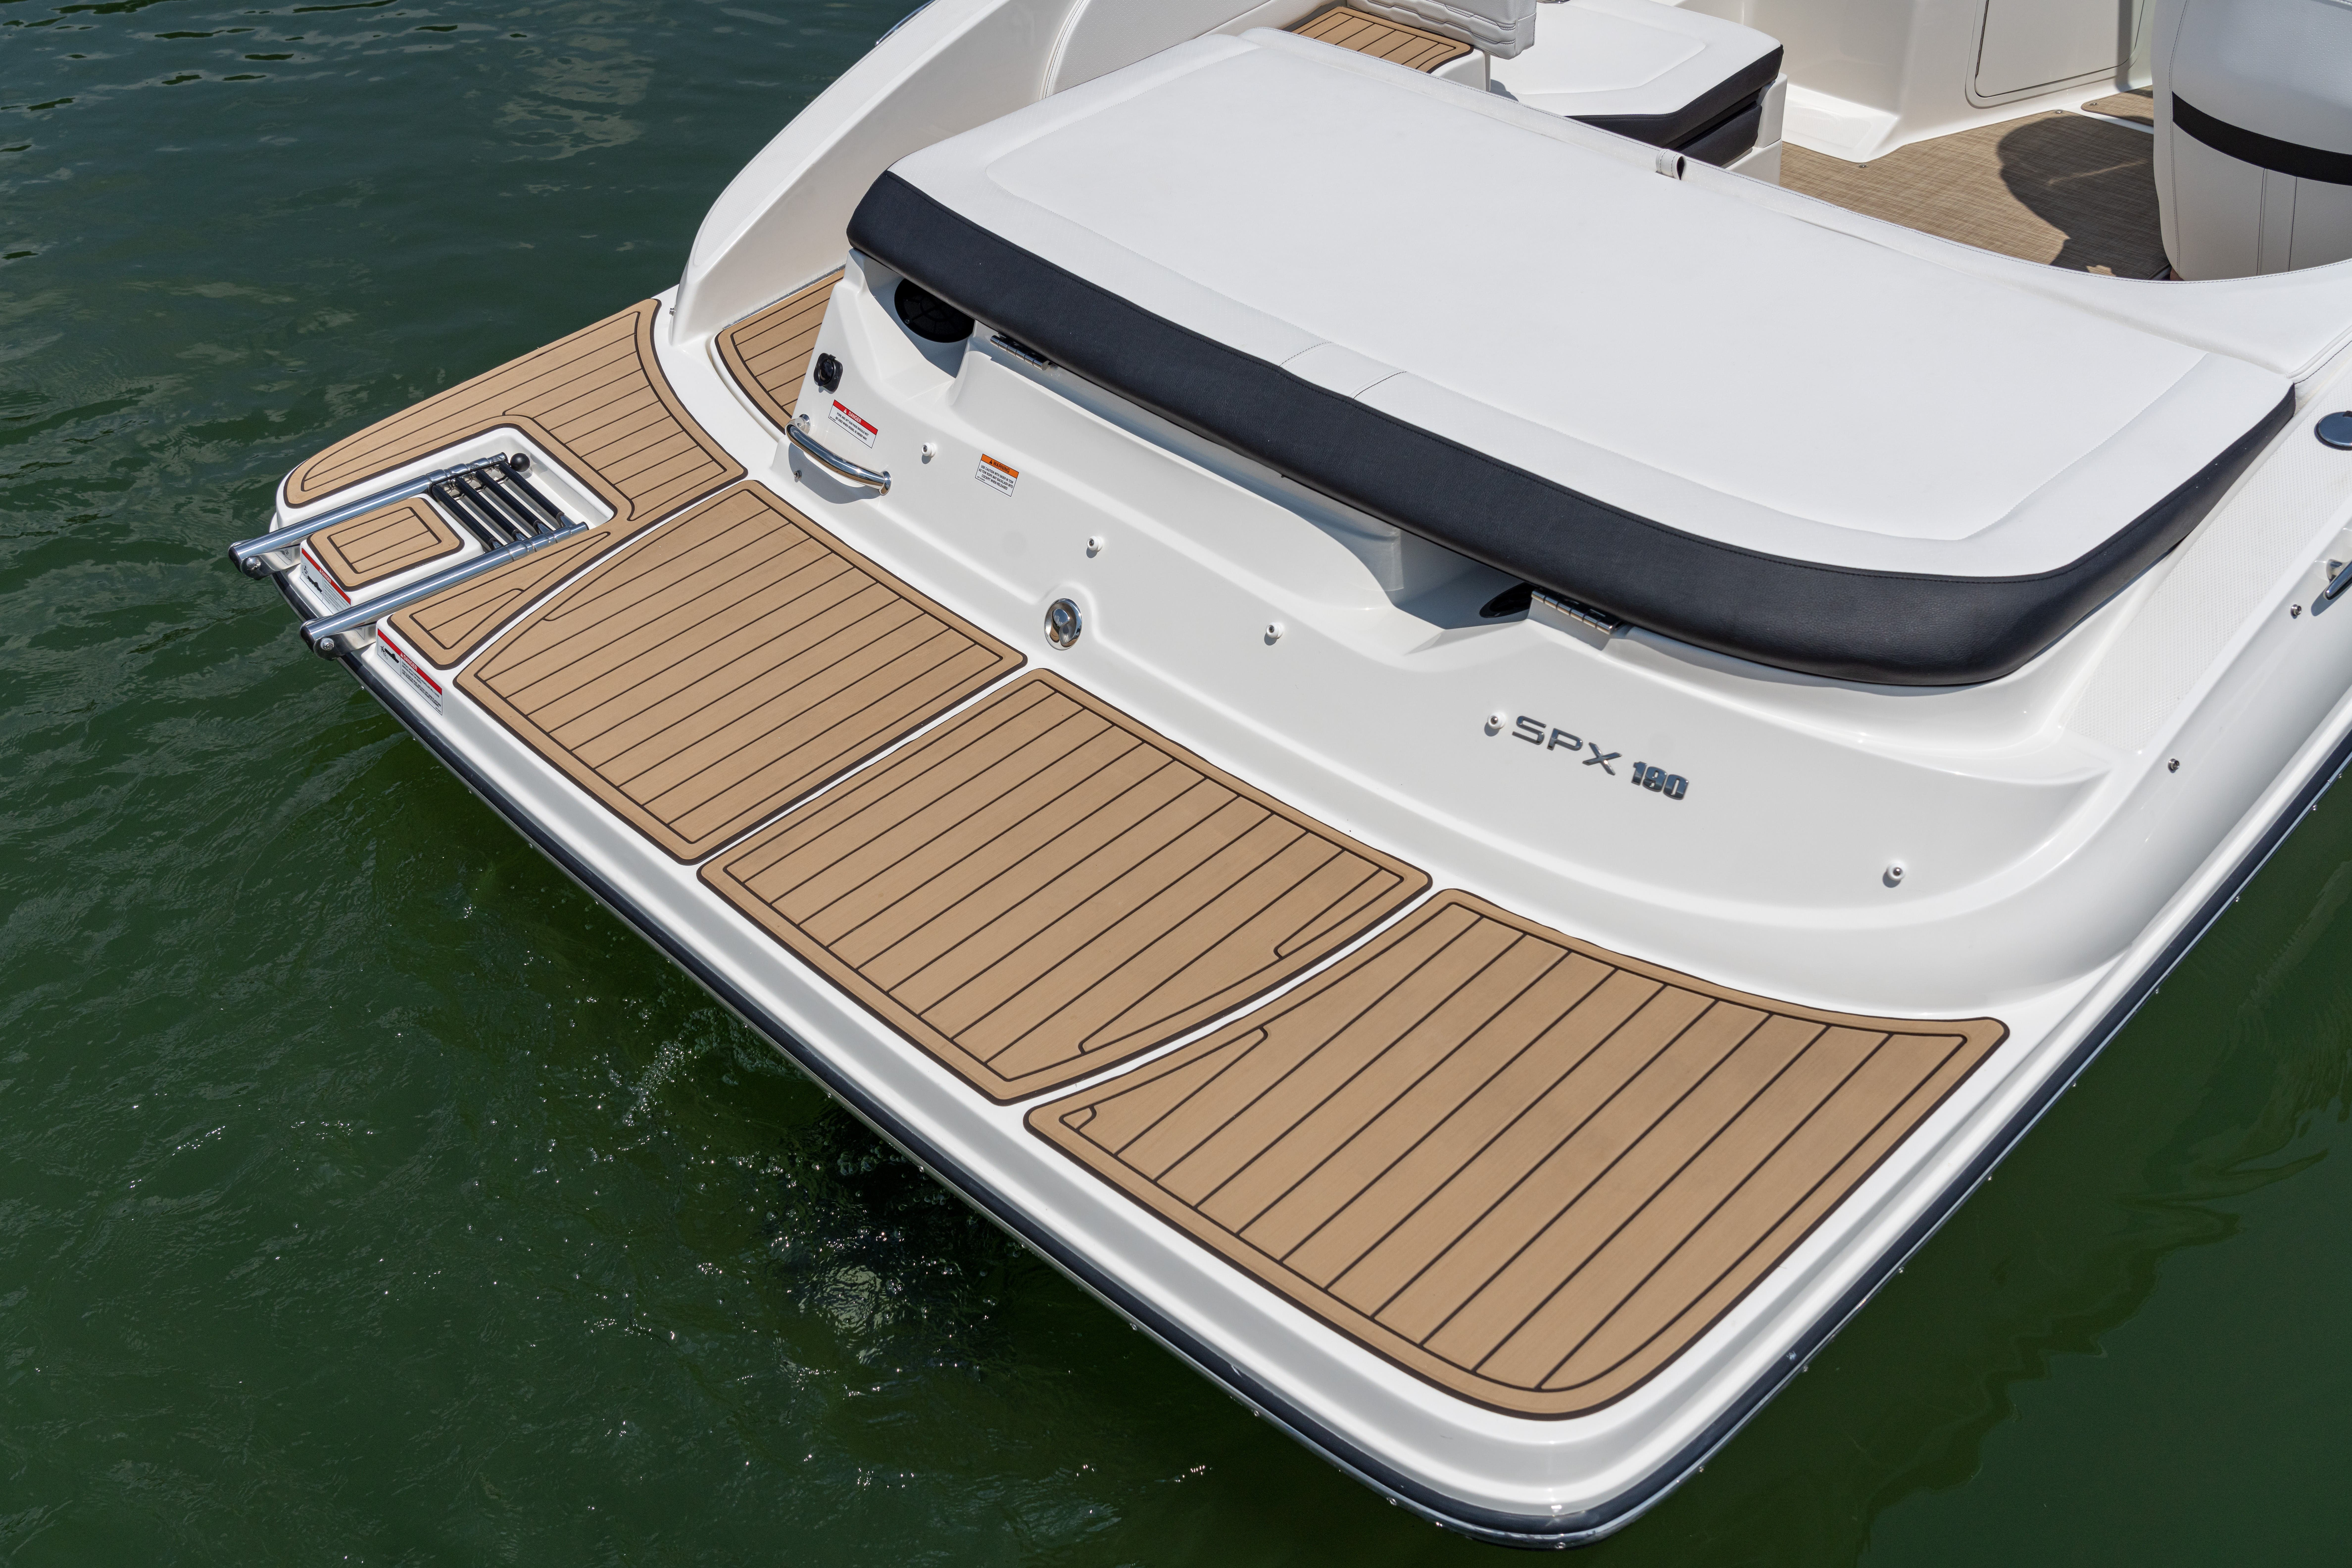 2021 Sea Ray boat for sale, model of the boat is 190 SPX & Image # 10 of 11